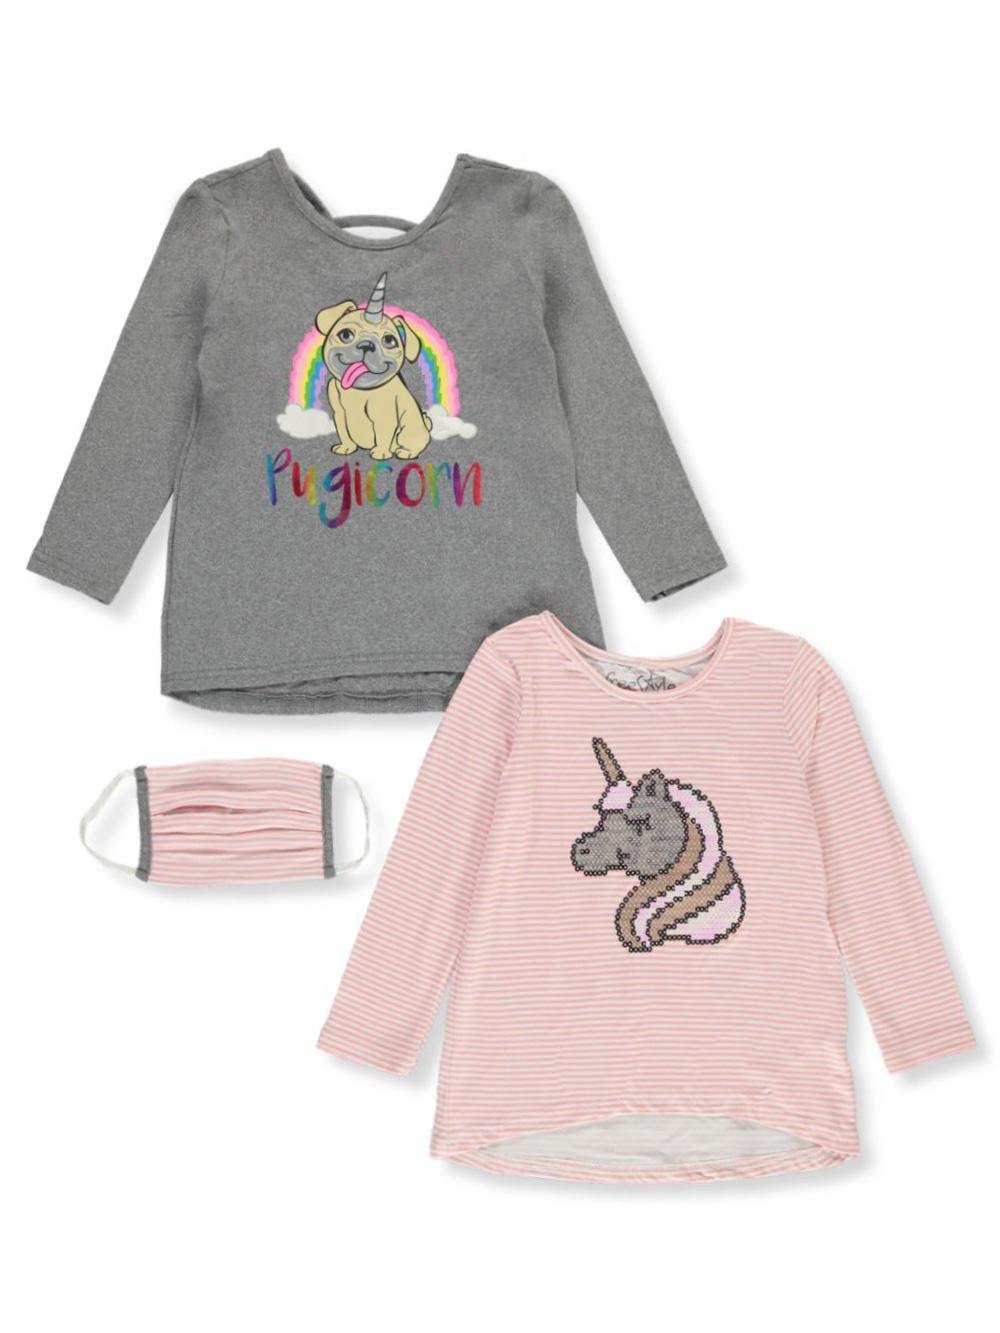 Size 2t Tops for Girls